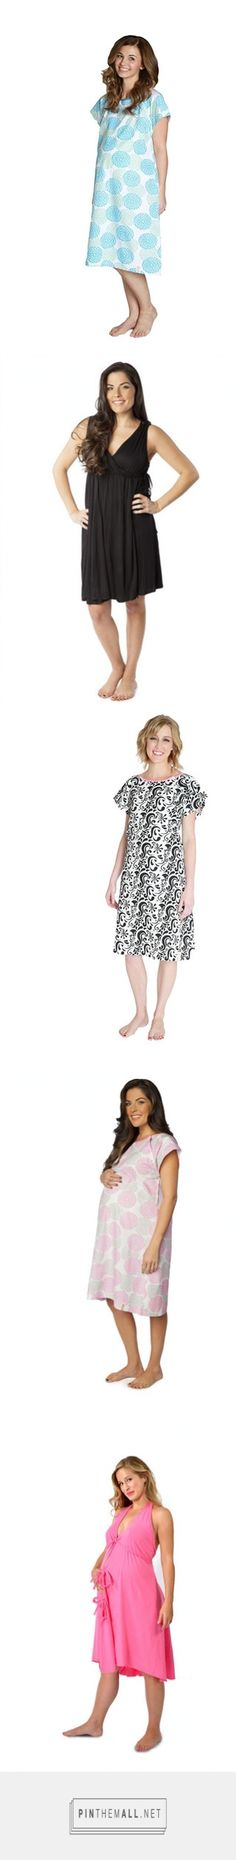 Largest Selection of Labor and Delivery Gowns - Hospital Gowns – Milk & Baby    www.milkandbaby.com